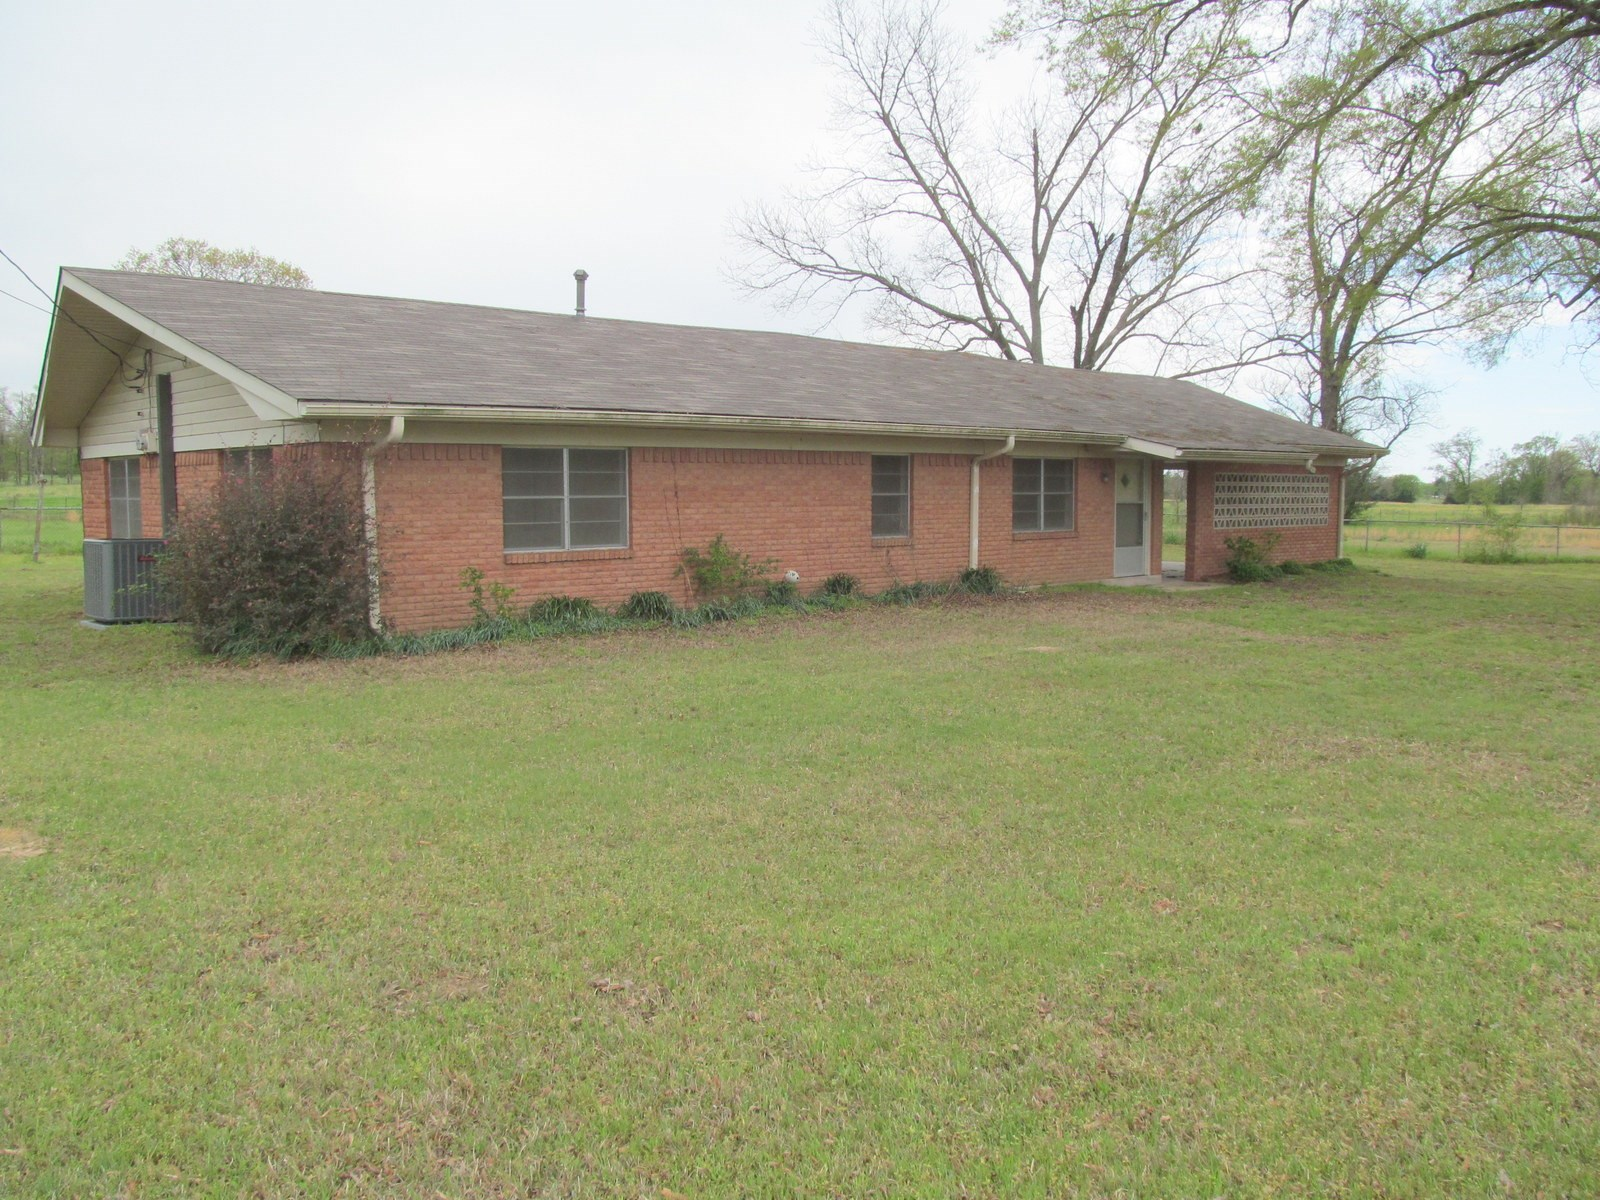 WINNSBORO TEXAS BRICK HOME FOR SALE - WOOD COUNTY TEXAS